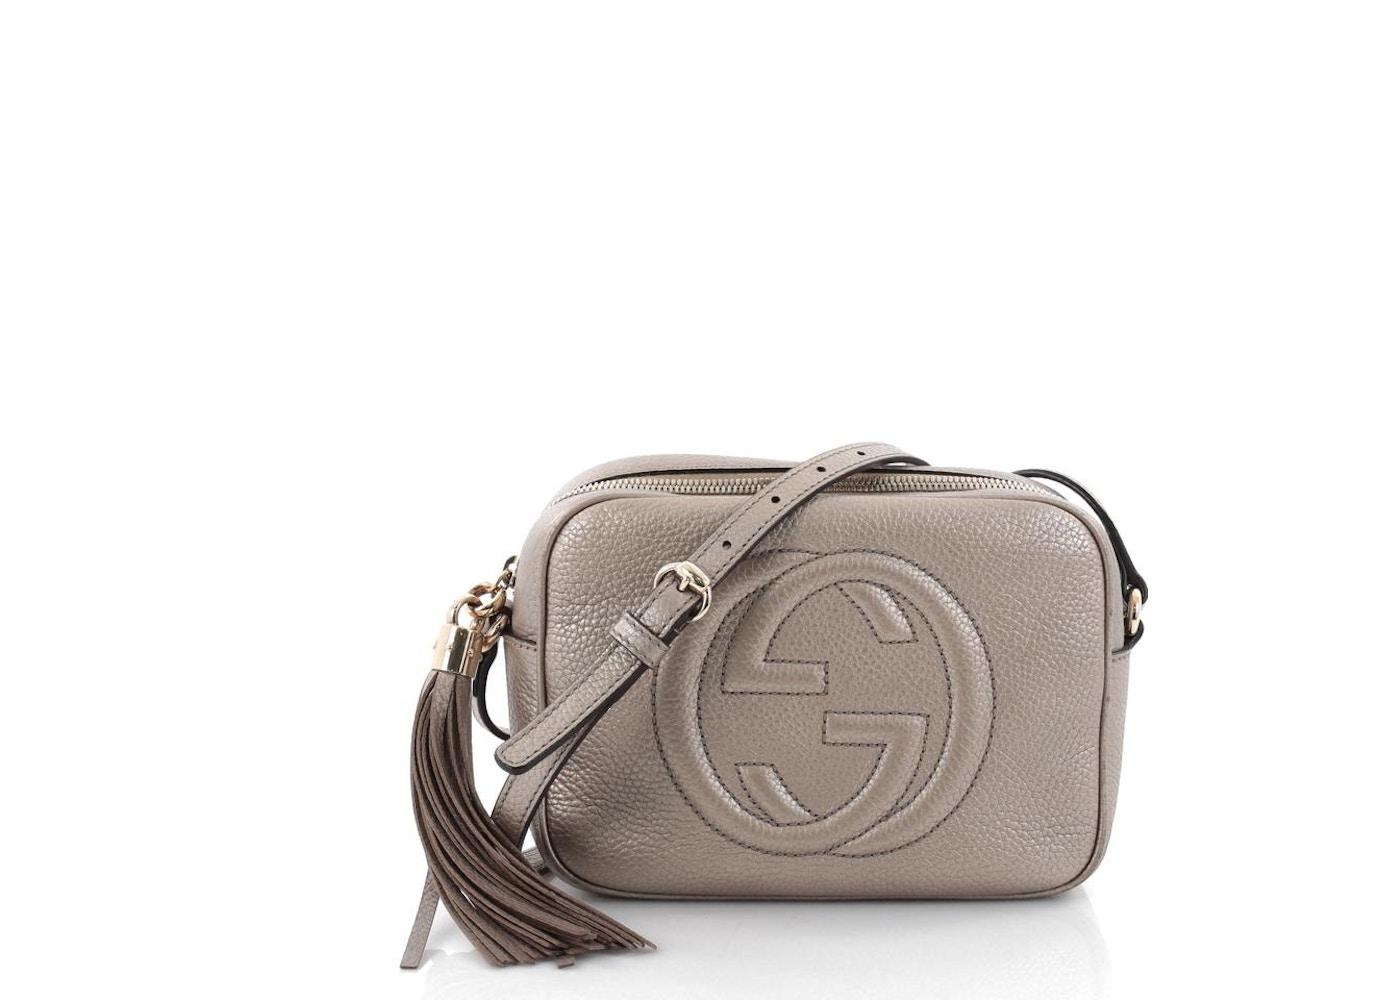 13fee48d32e Gucci Soho Disco Crossbody GG Interlocking GG Logo Small Champagne. GG  Interlocking GG Logo Small Champagne